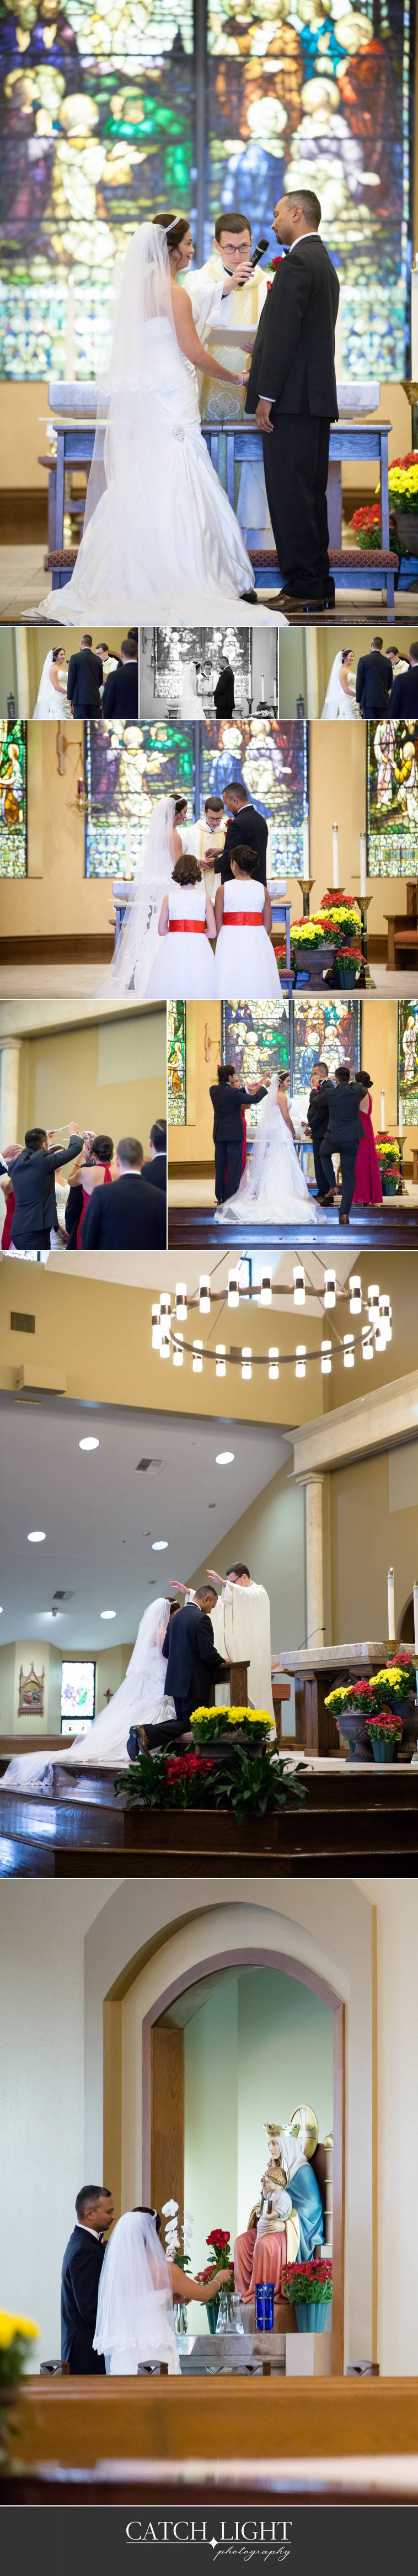 kansas city wedding photography 6